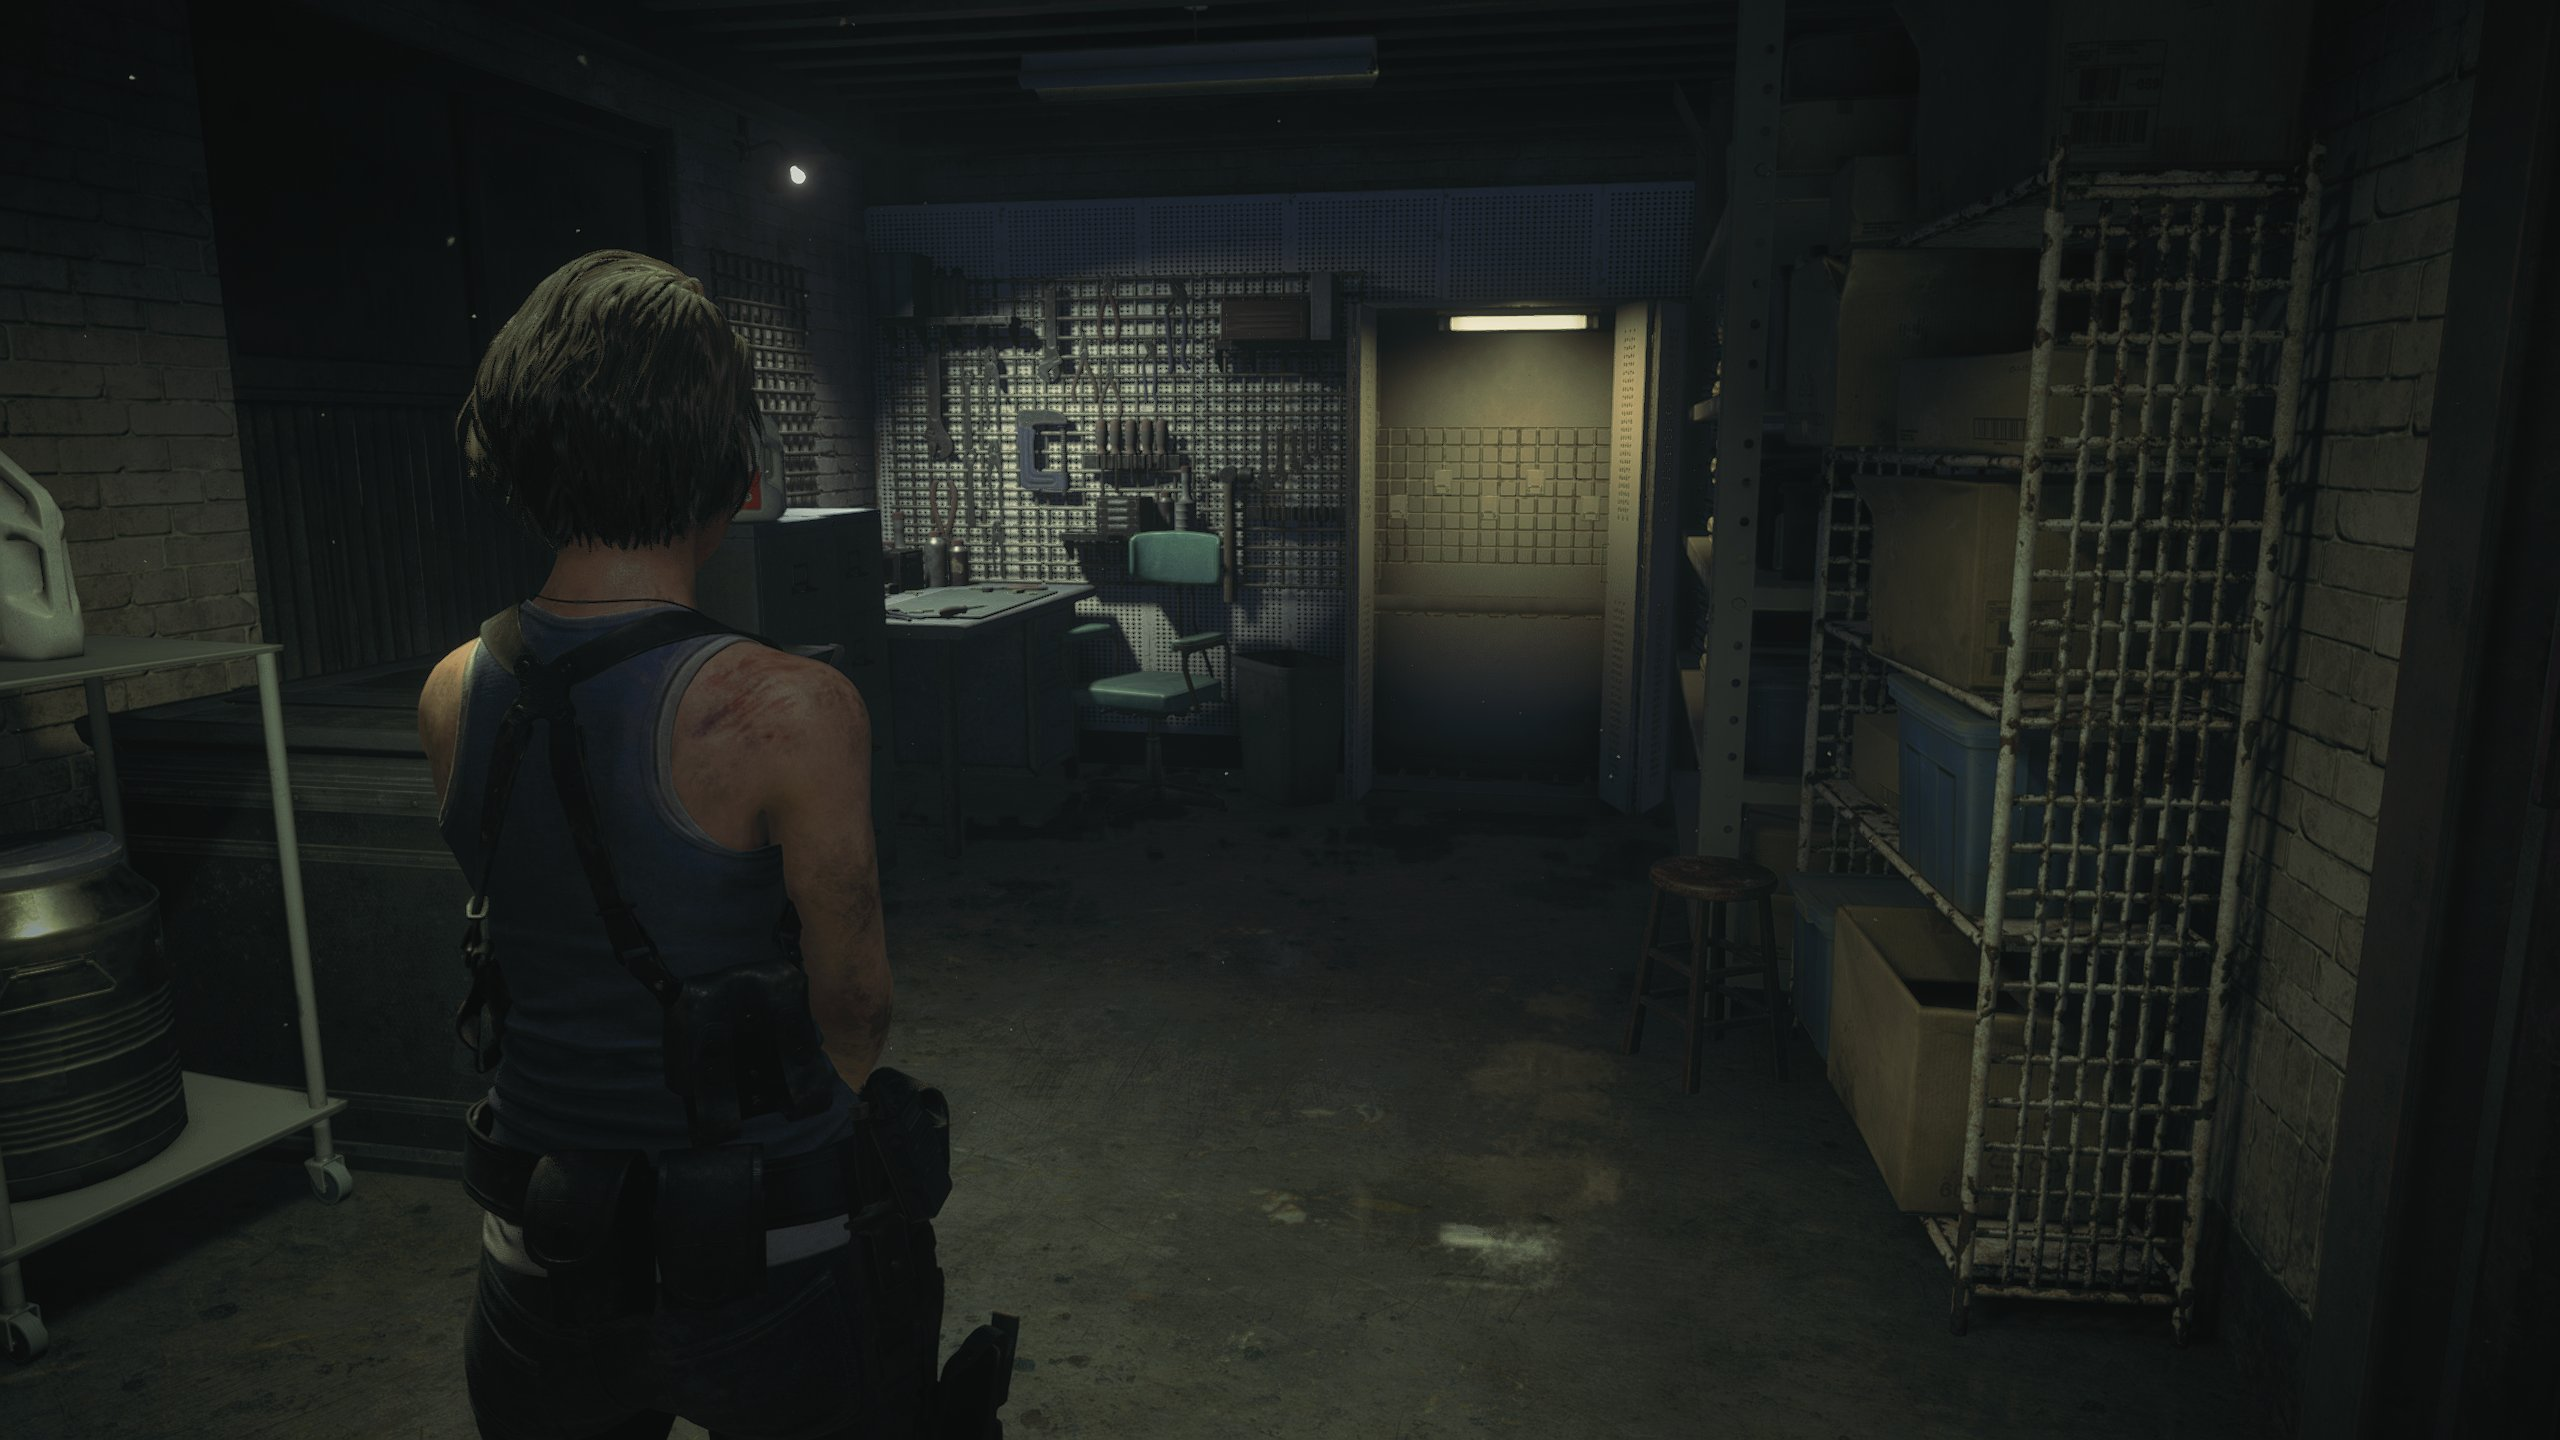 Resident Evil 3 Remake Demo Out Of Bounds Areas Showcased In Brand